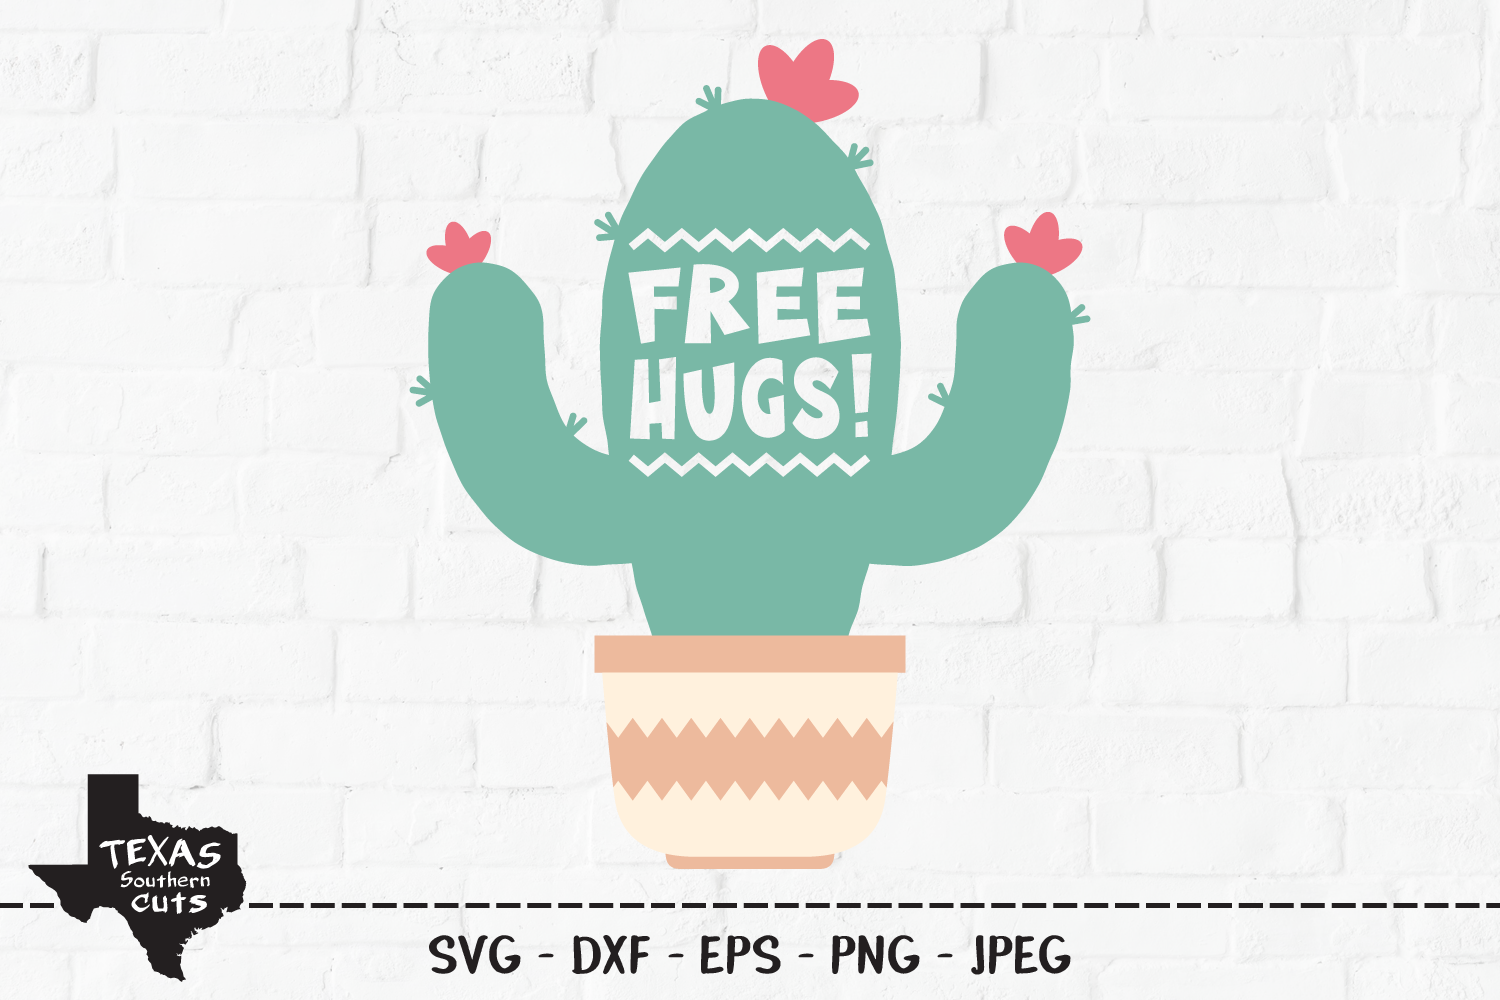 Download Free Free Hugs Western Shirt Design Graphic By Texassoutherncuts Creative Fabrica for Cricut Explore, Silhouette and other cutting machines.